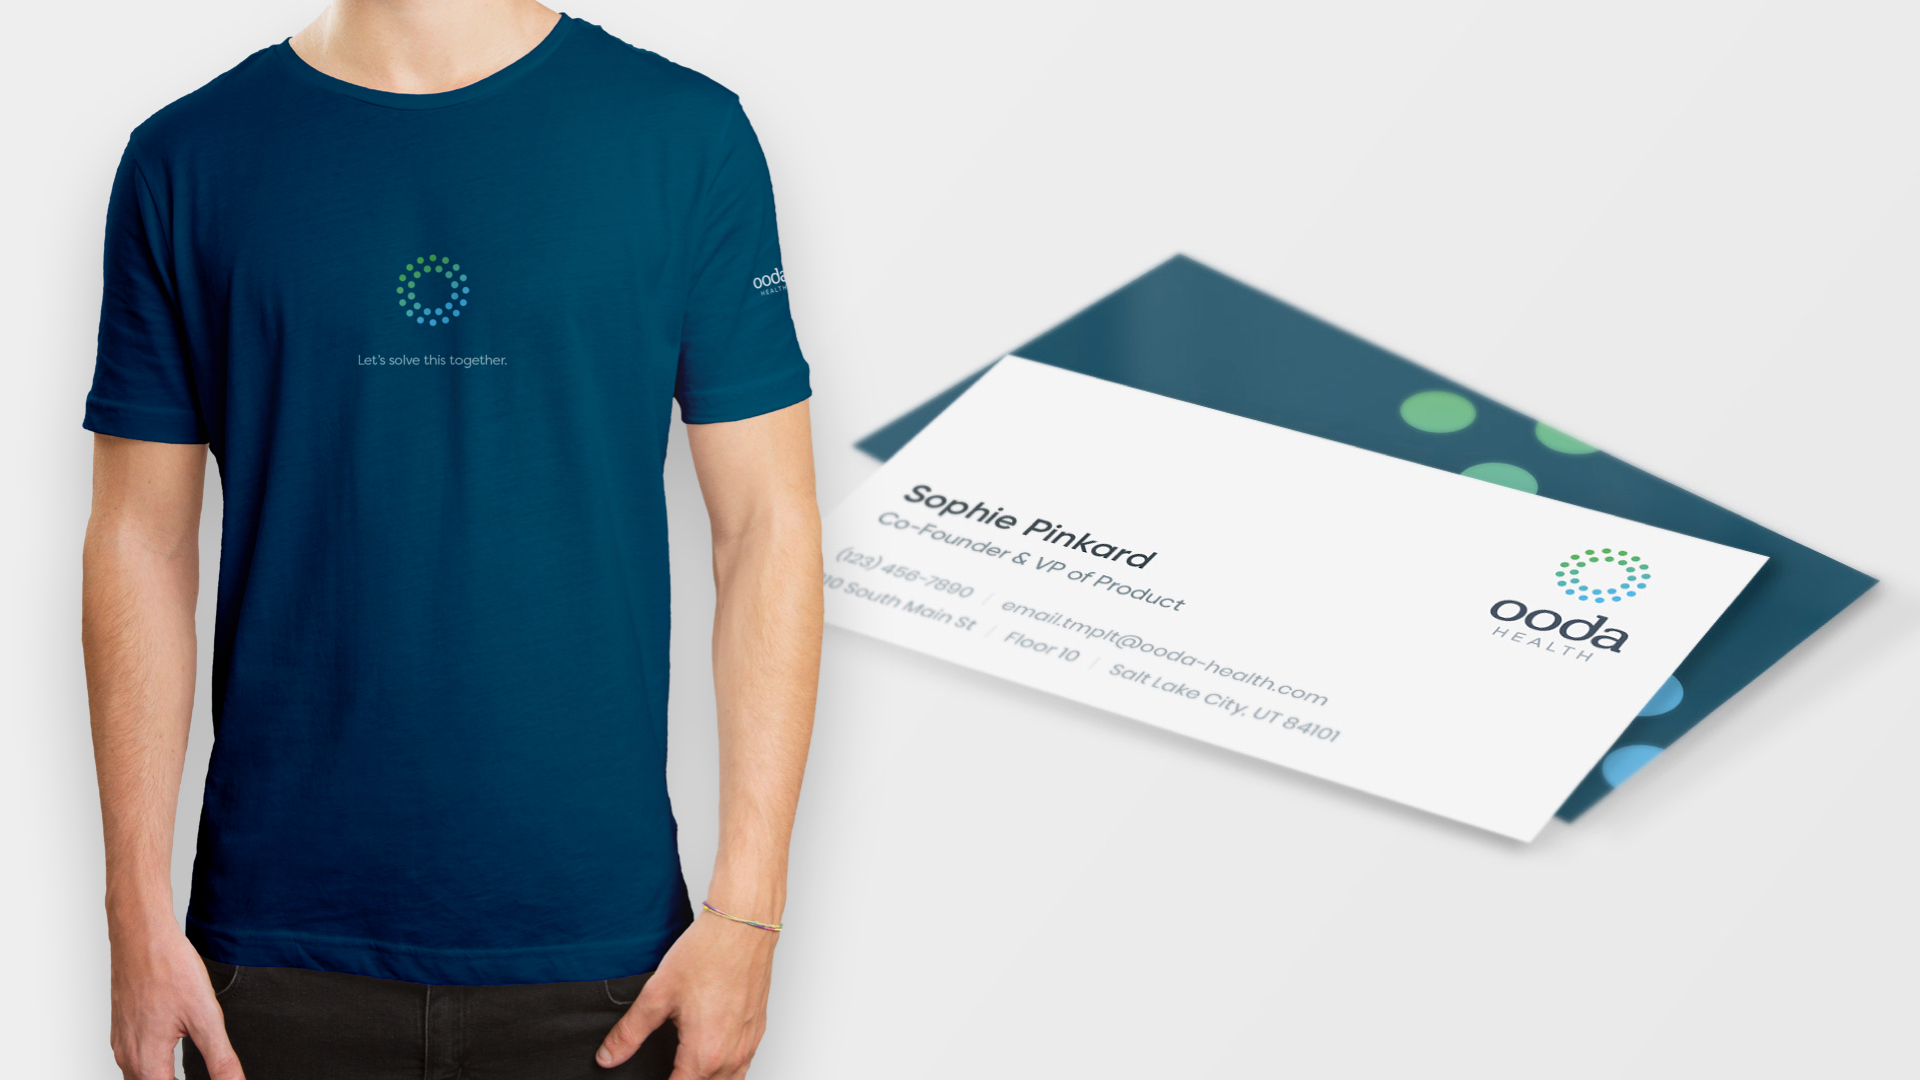 tee shirt and business card design